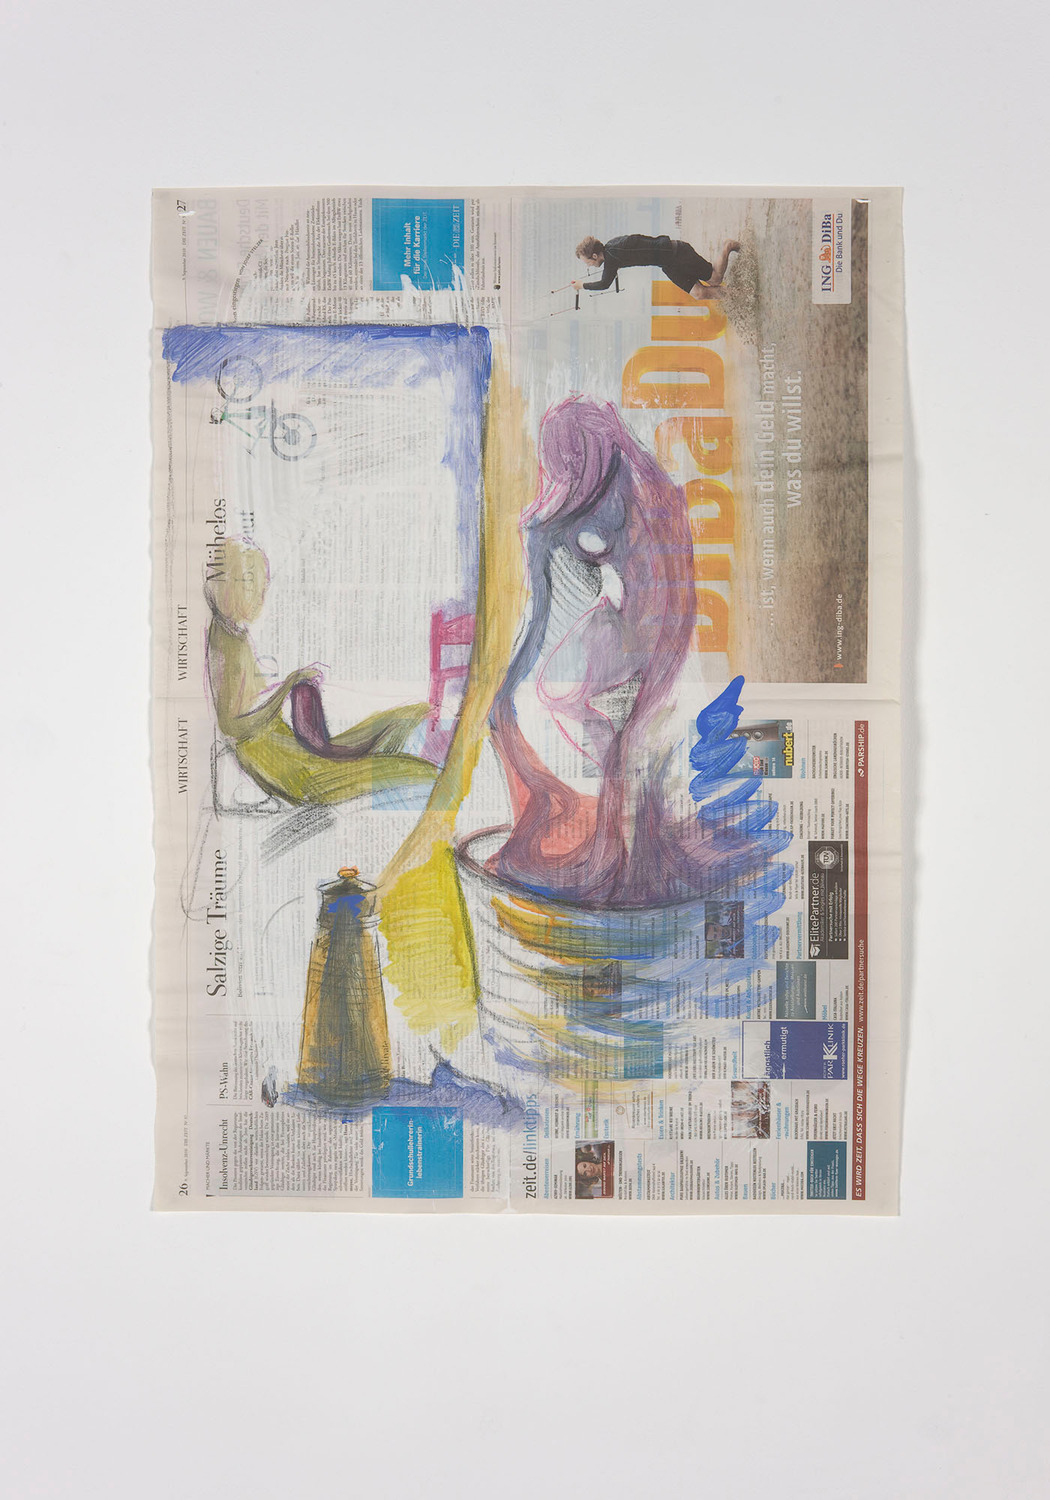 Untitled, 2011, Watercolour, pastel on newsprint, 79.5 x 56.7 cm